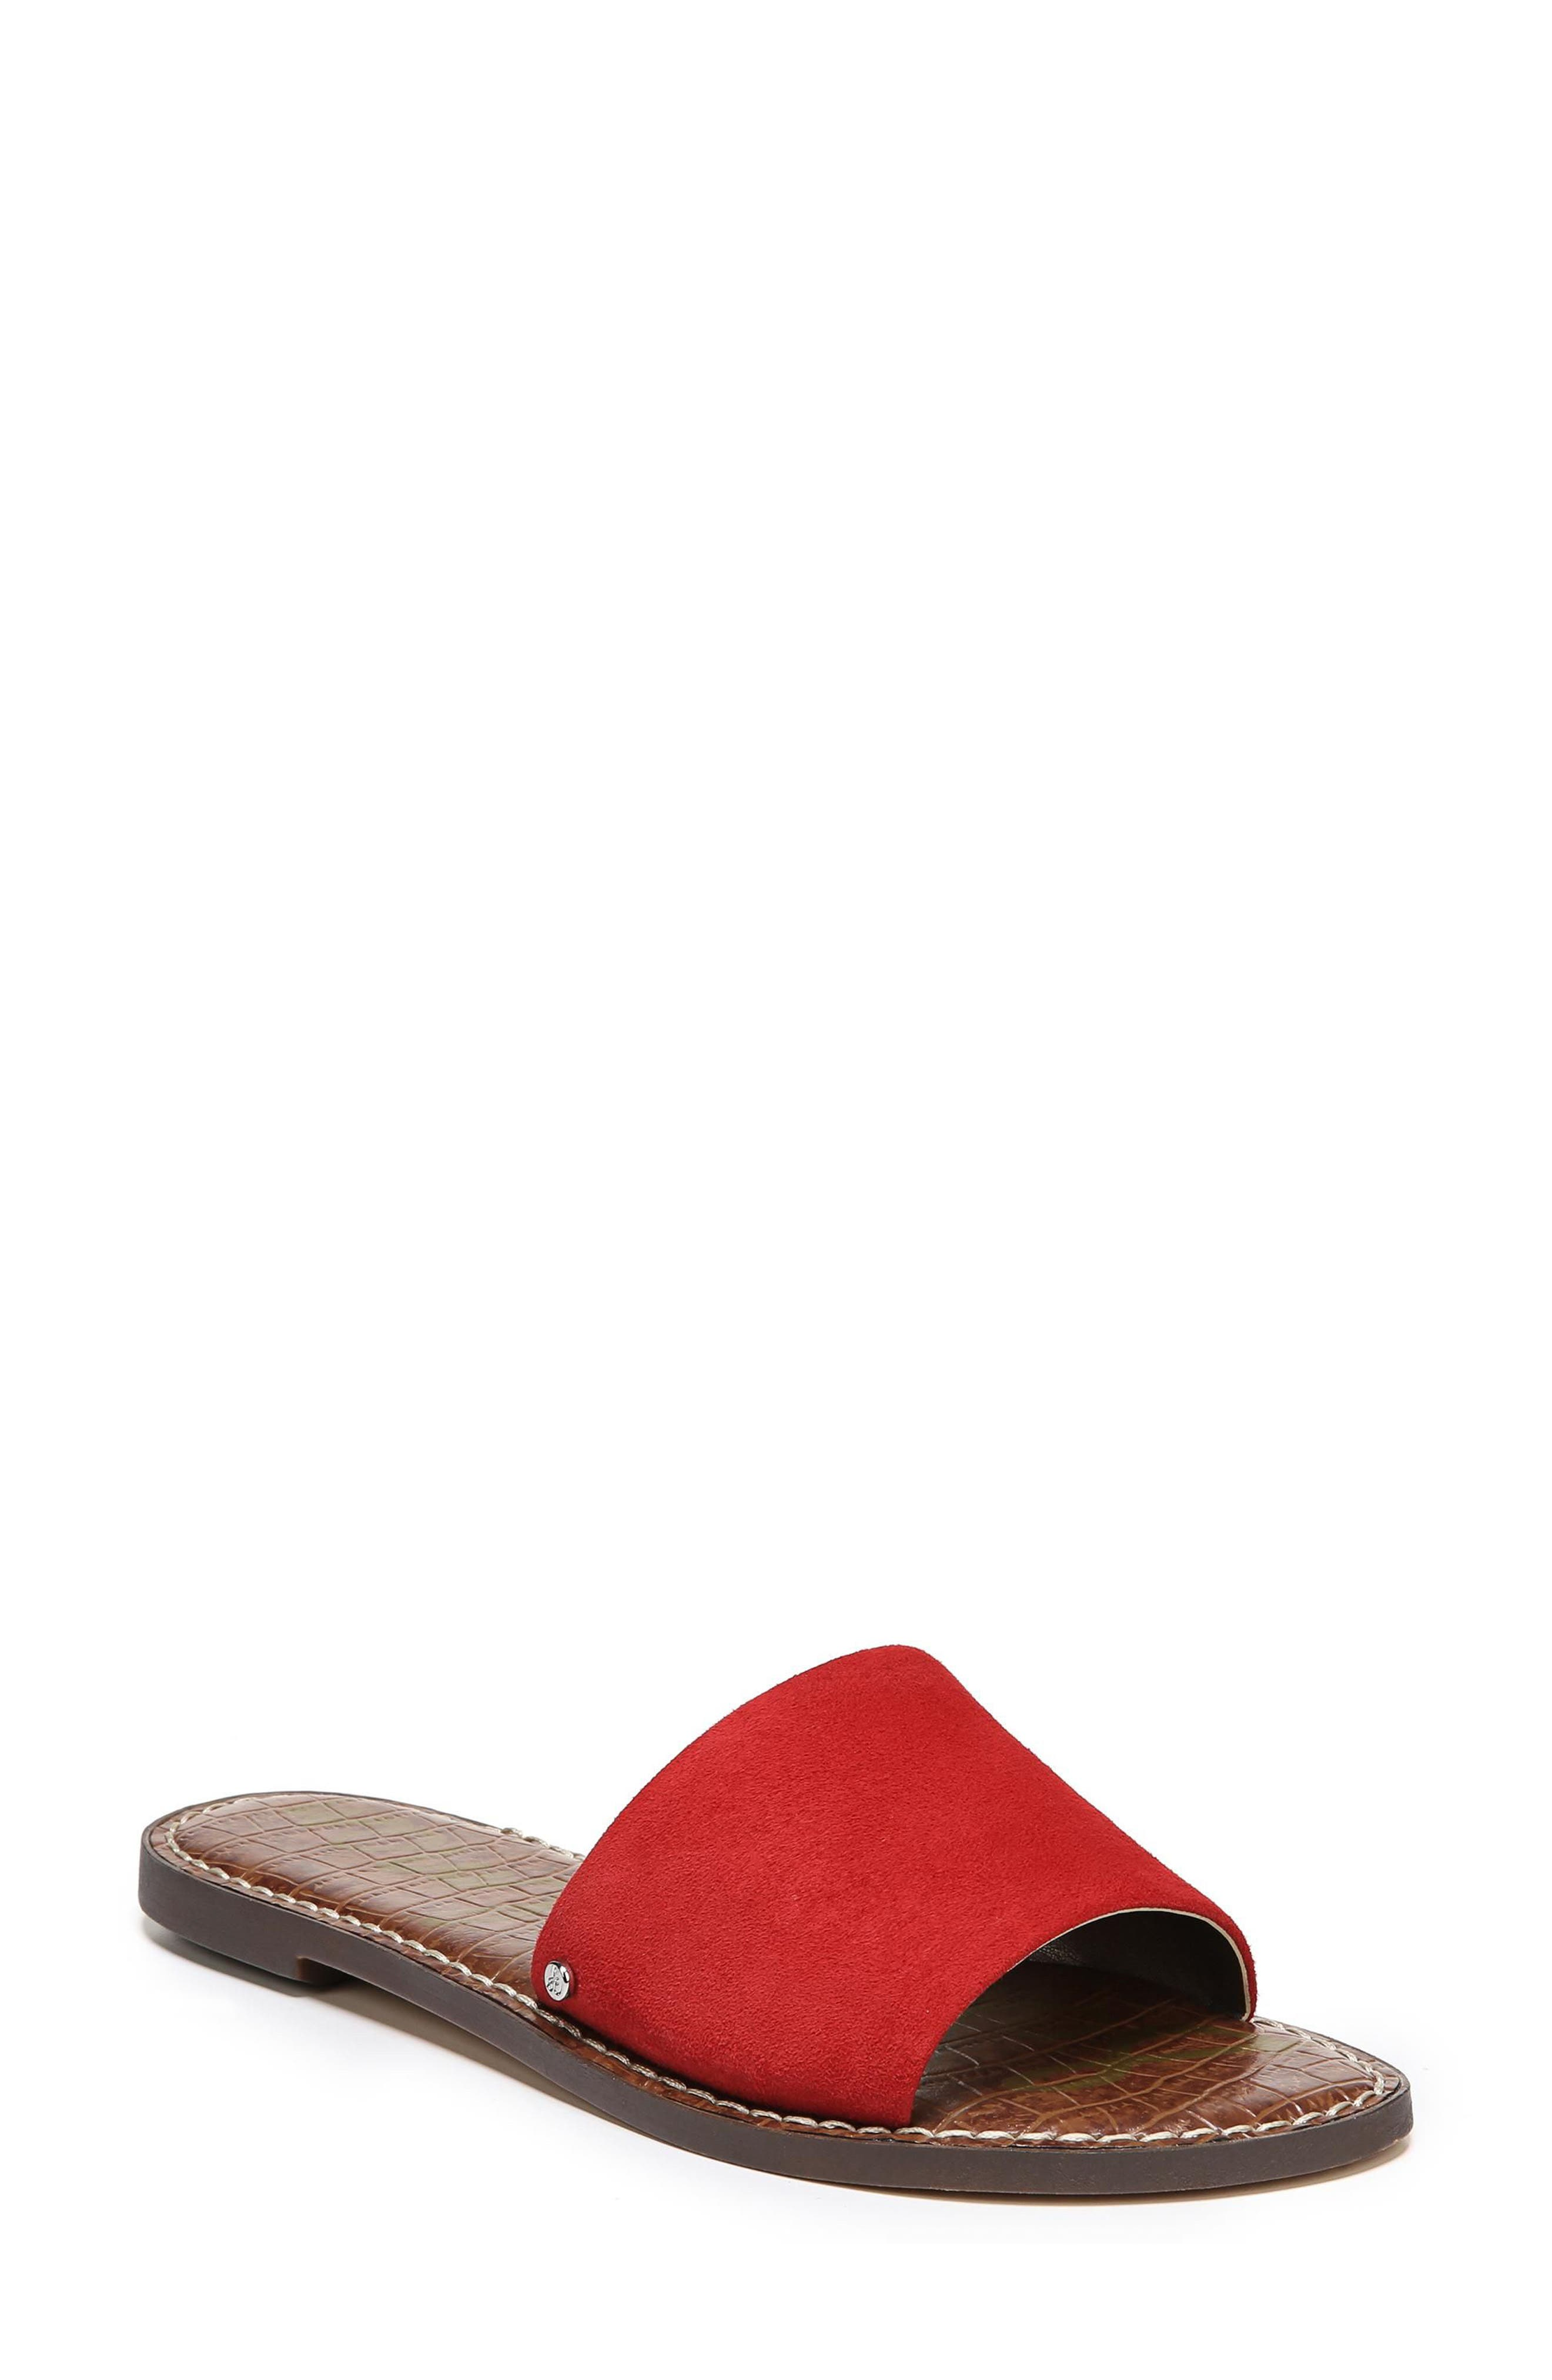 Gio Slide Sandal,                         Main,                         color, Red Suede